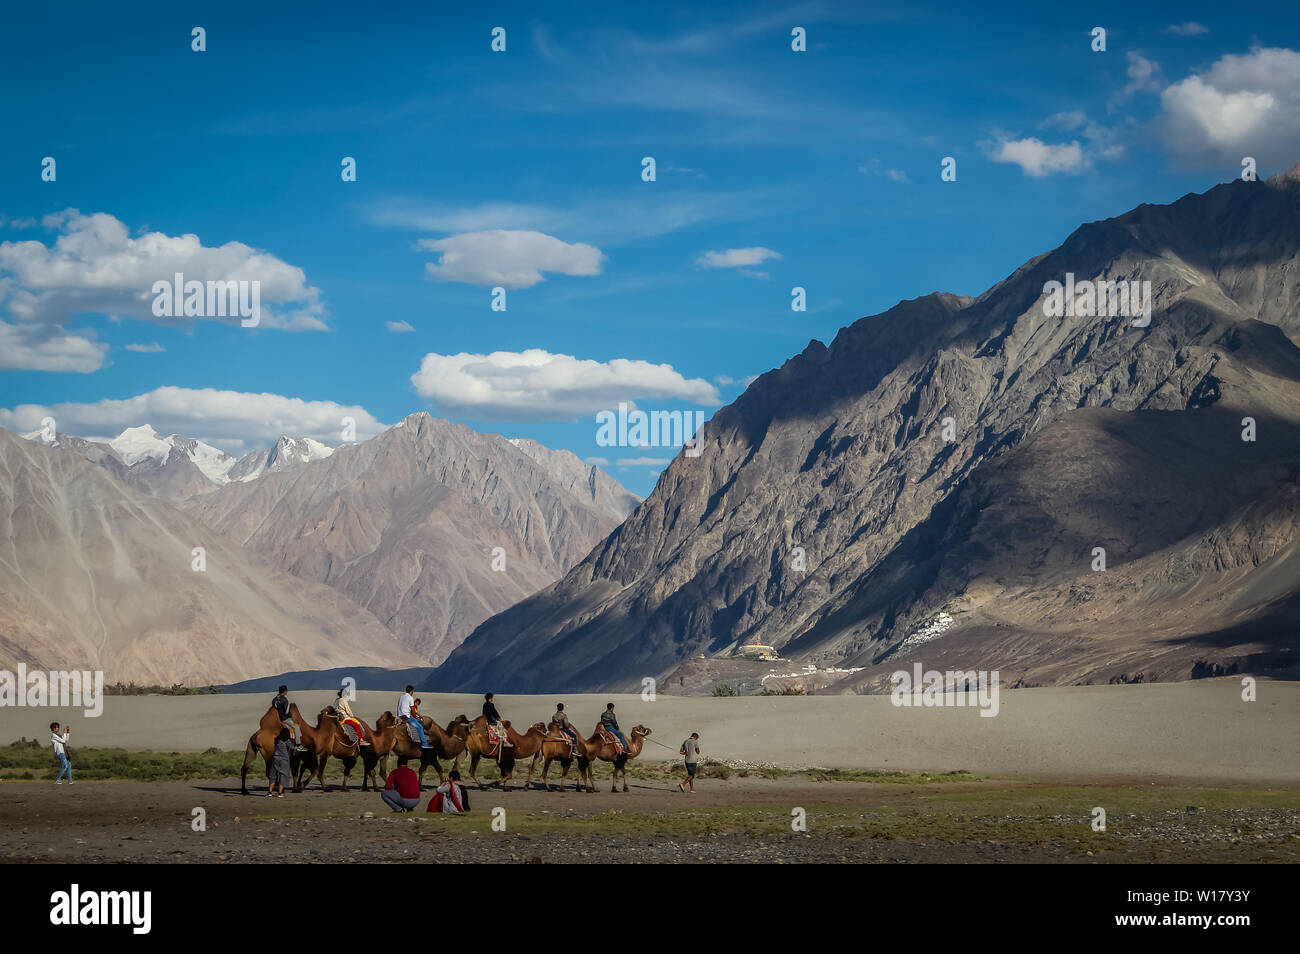 Ladakh, India; Dated- May 14, 2019: Tourists enjoying camel ride in the cold desert of Ladakh. Ladakh landscape with desert mountains and blue sky - Stock Image